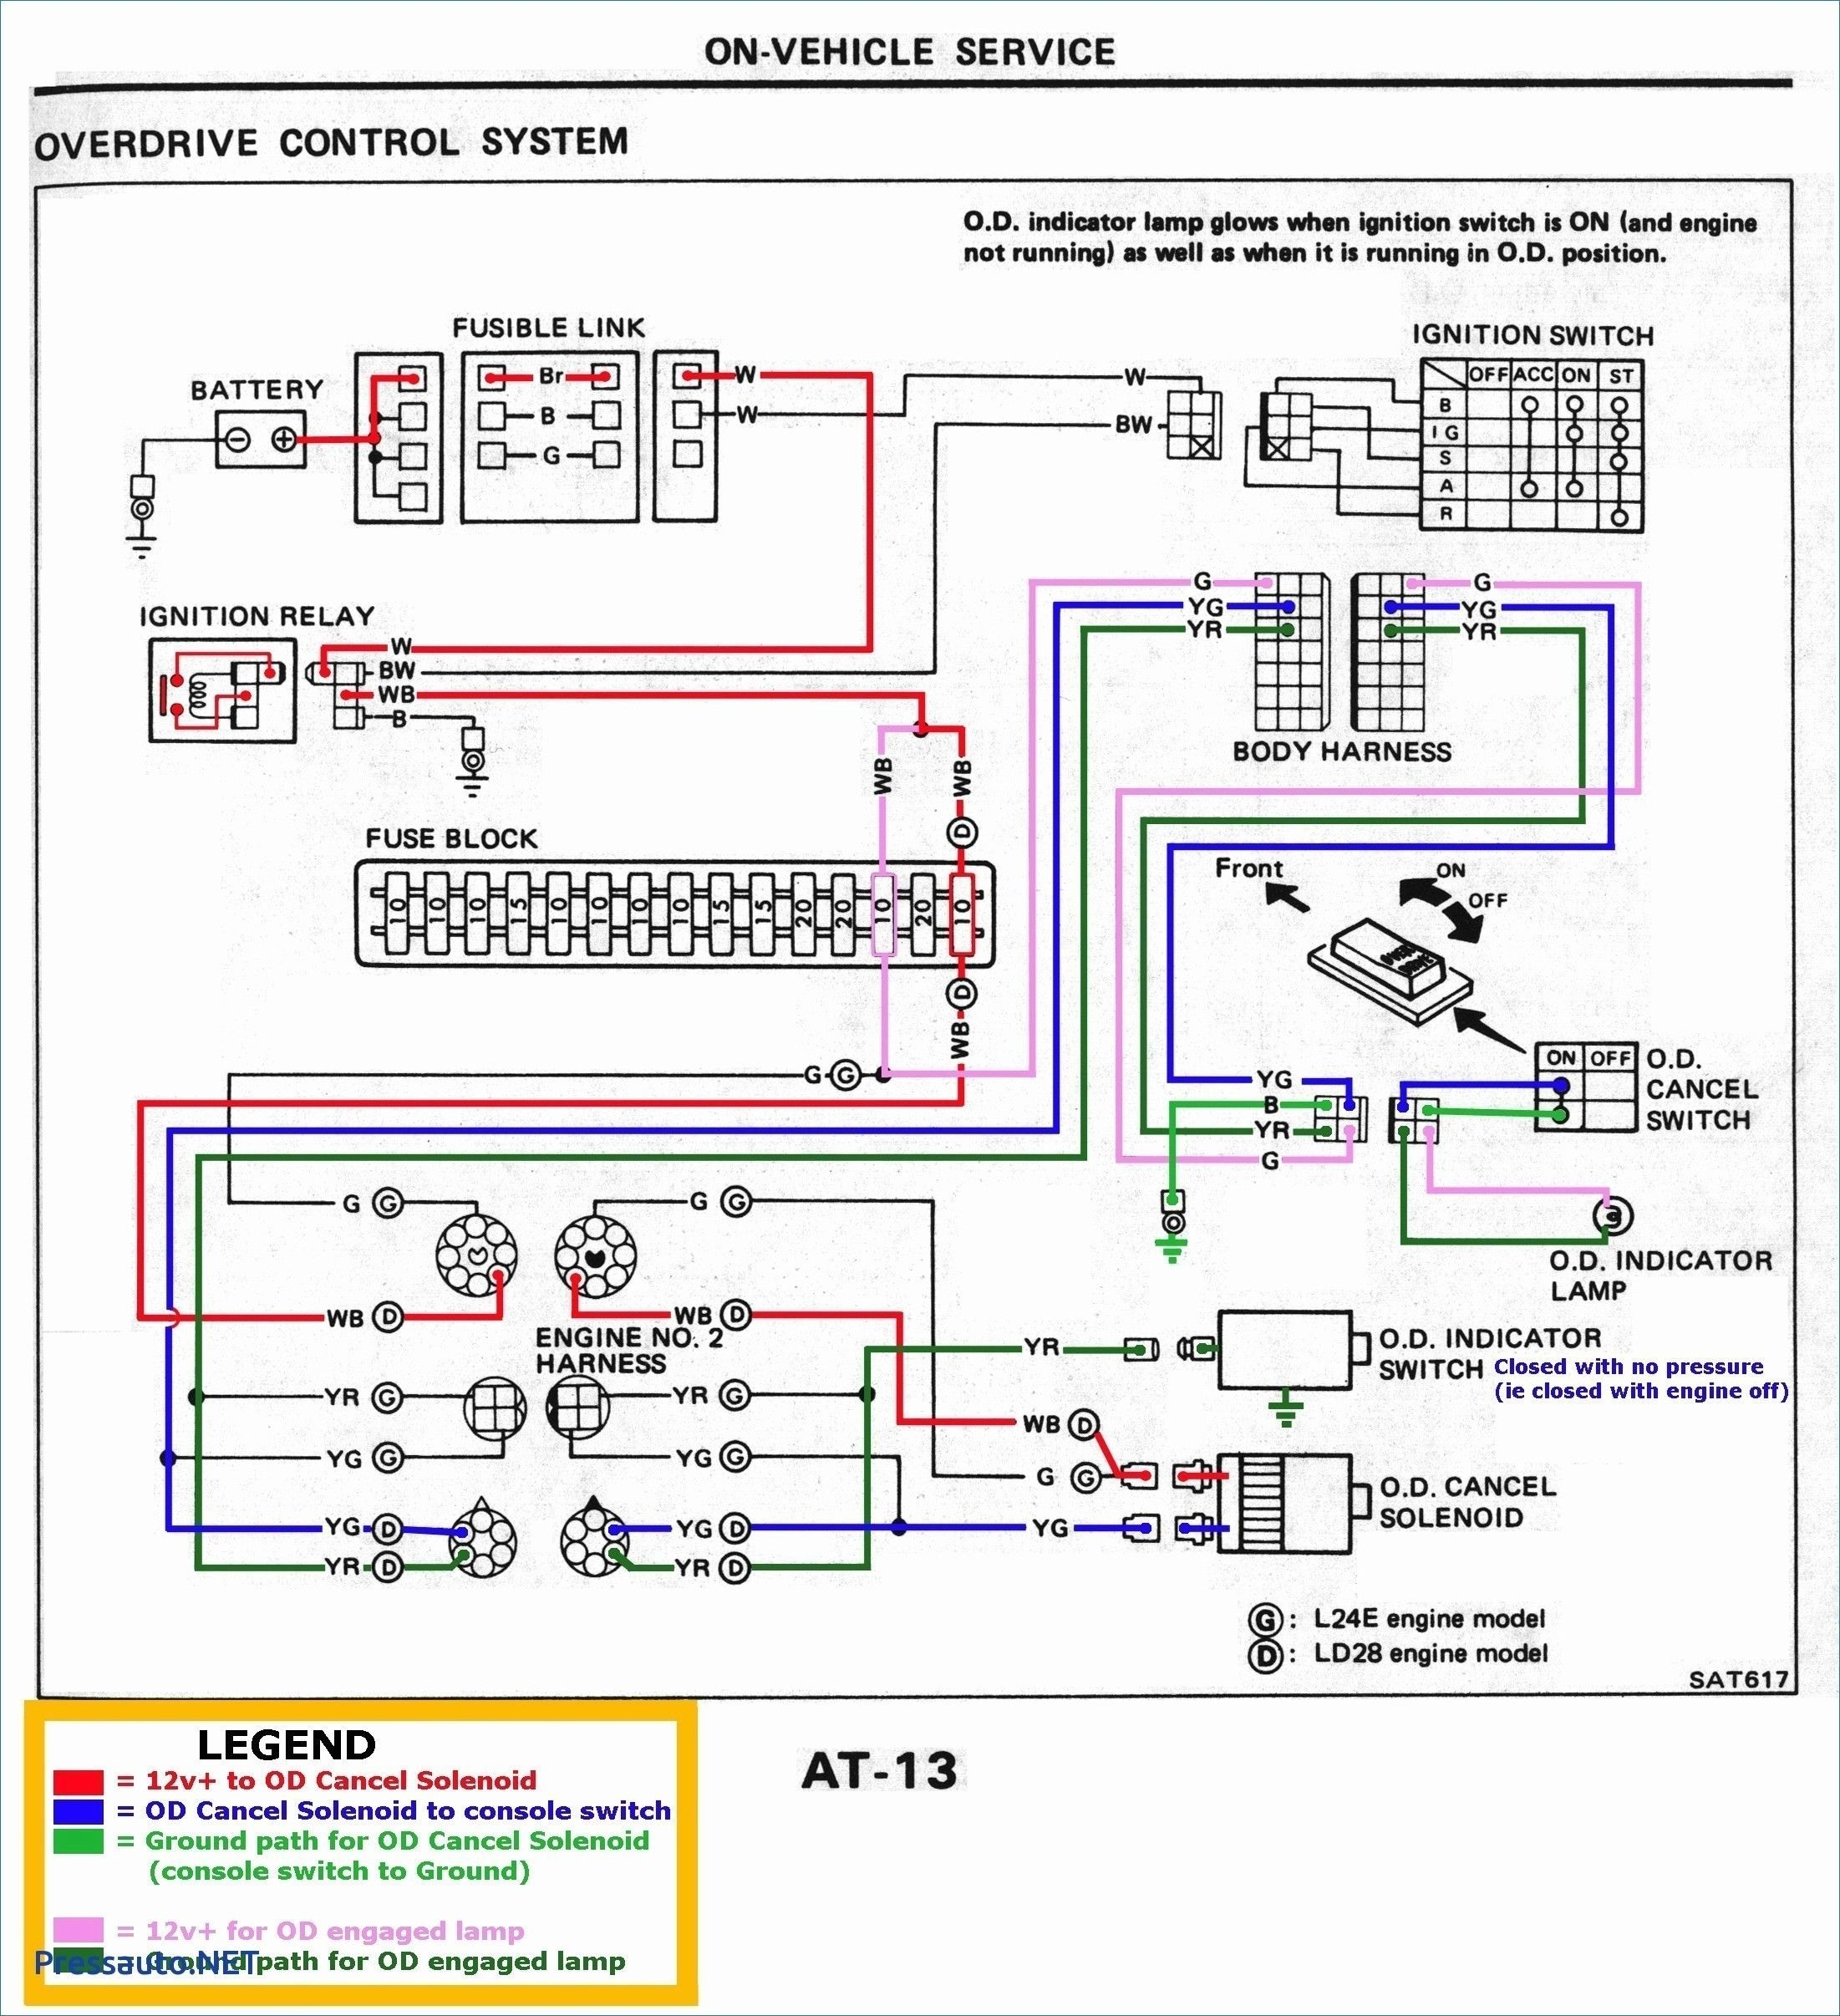 Bmw Remote Starter Diagram Wiring Diagram Turbo Turbo Lionsclubviterbo It